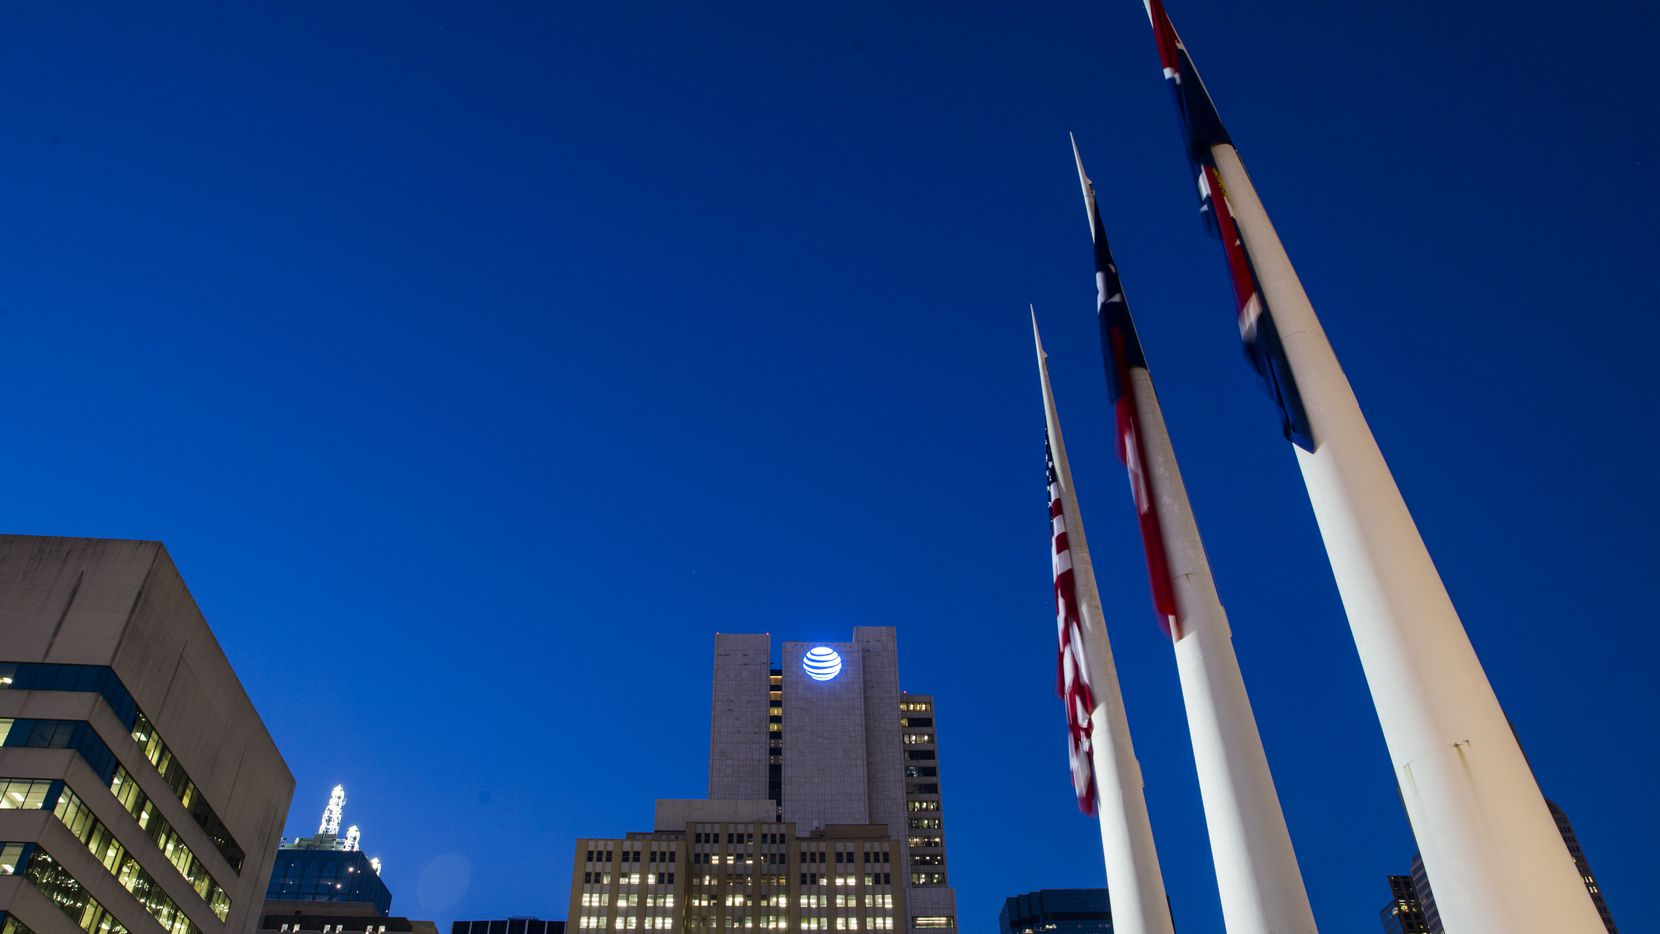 The AT&T headquarters building, surrounded by other downtown buildings and flags in front of City Hall on Monday in downtown Dallas.